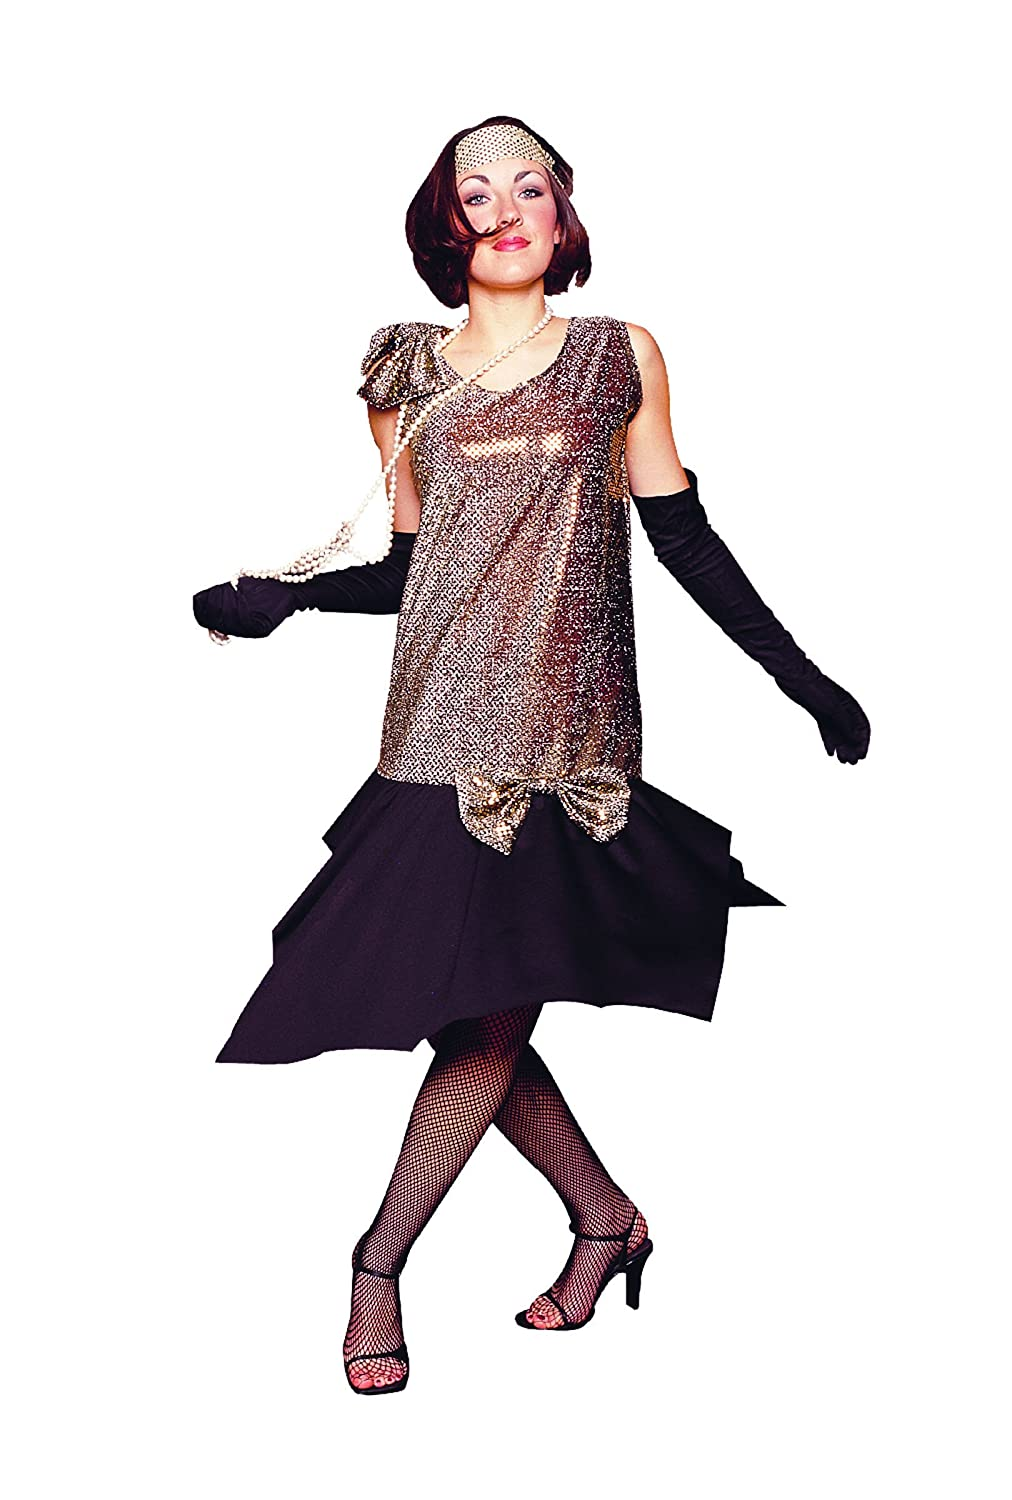 Great Gatsby Dress – Great Gatsby Dresses for Sale Rag Time Flapper $28.30 AT vintagedancer.com